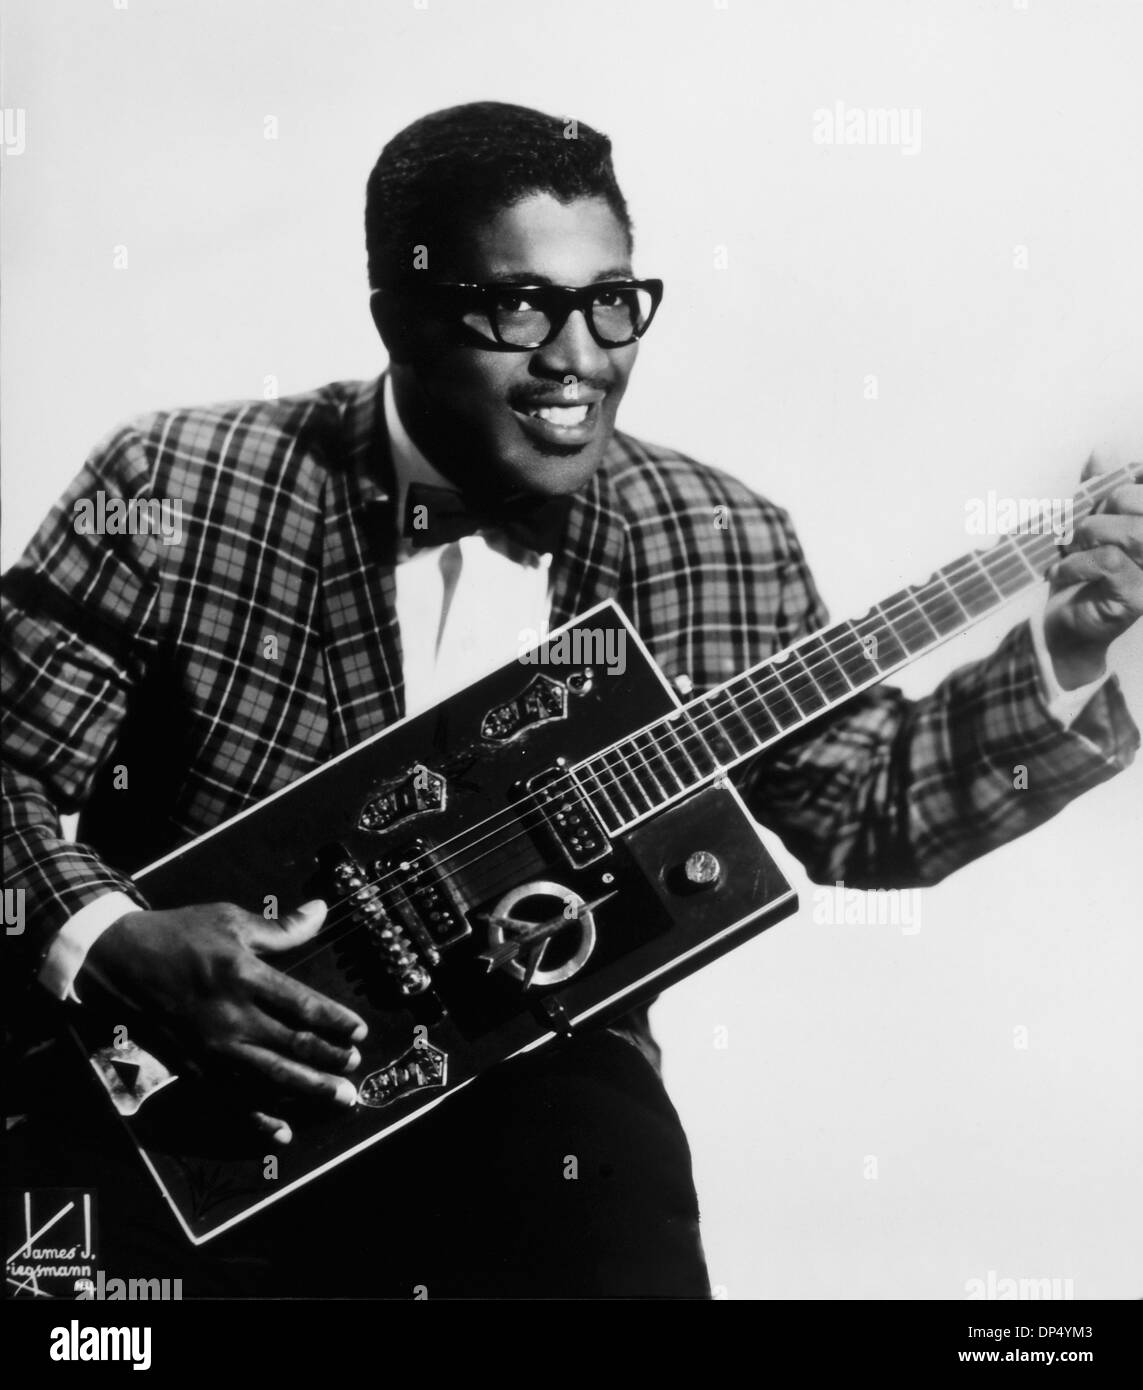 Bo Diddley (1928-2008), American Blues and R&B Musician, Portrait, 1959 - Stock Image